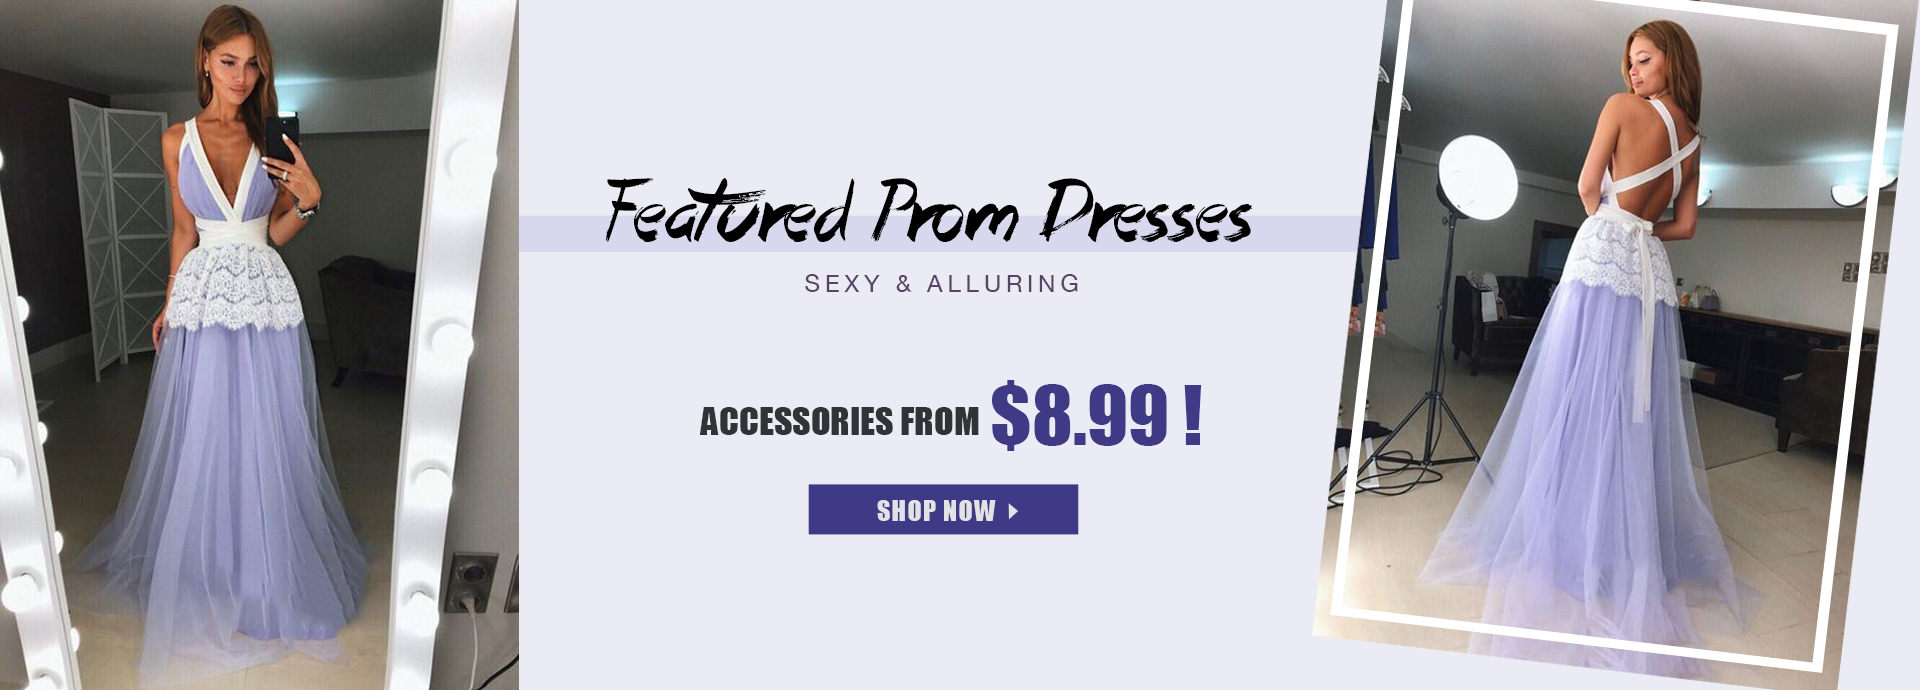 Featured Prom Dresses